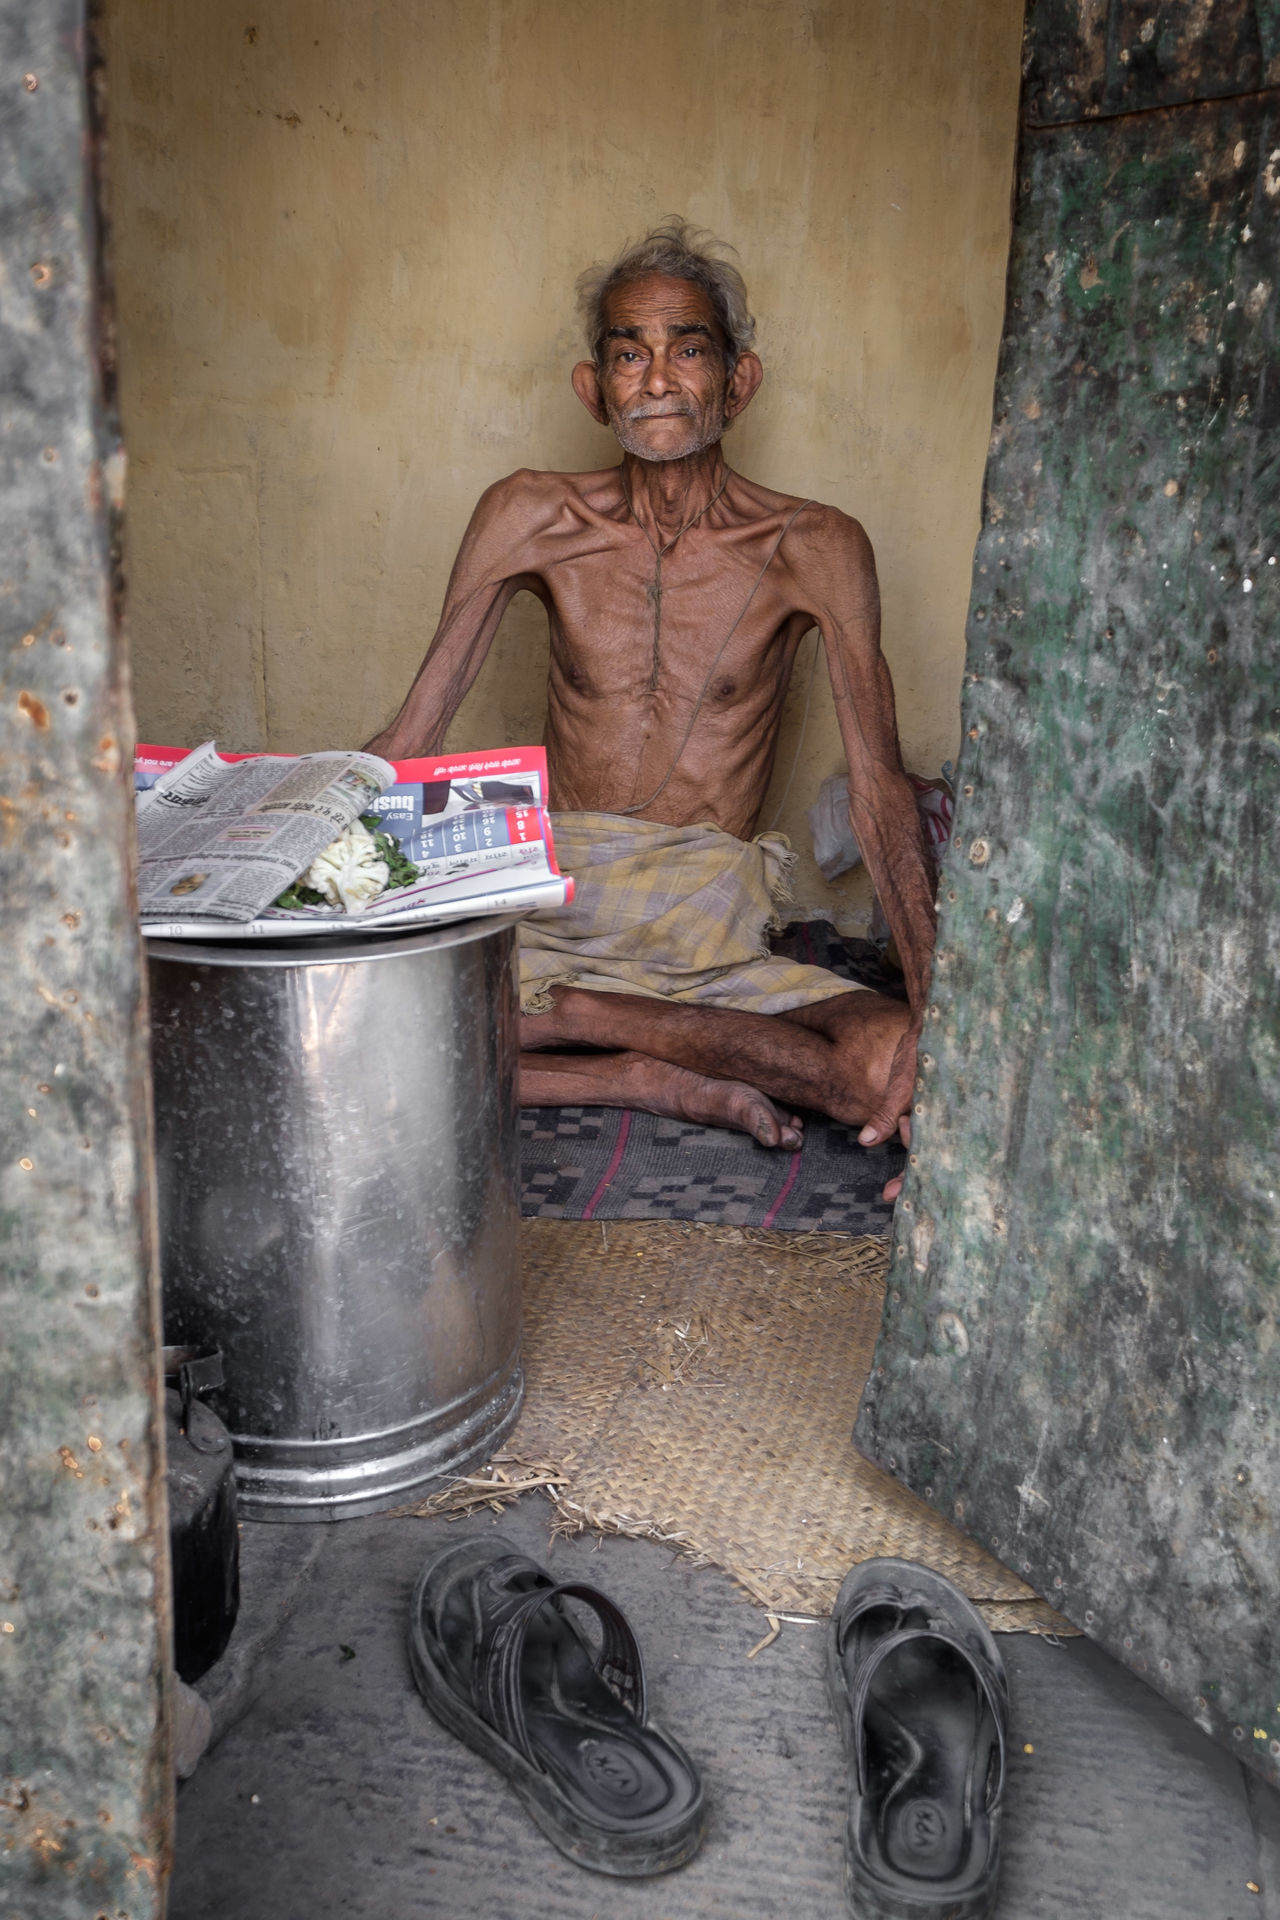 Varanasi is a holy city and is regarded as the last stop before Nirvana. People go there to die, believing that dying in this holy place will release them from the cycle of rebirth. This gentleman has no family to care for him - he just sits and waits. Documentary Photography Malnutrition Old Man Photojournalist - 2016 EyeEm Awards Poverty Travel Photography Varanasi India